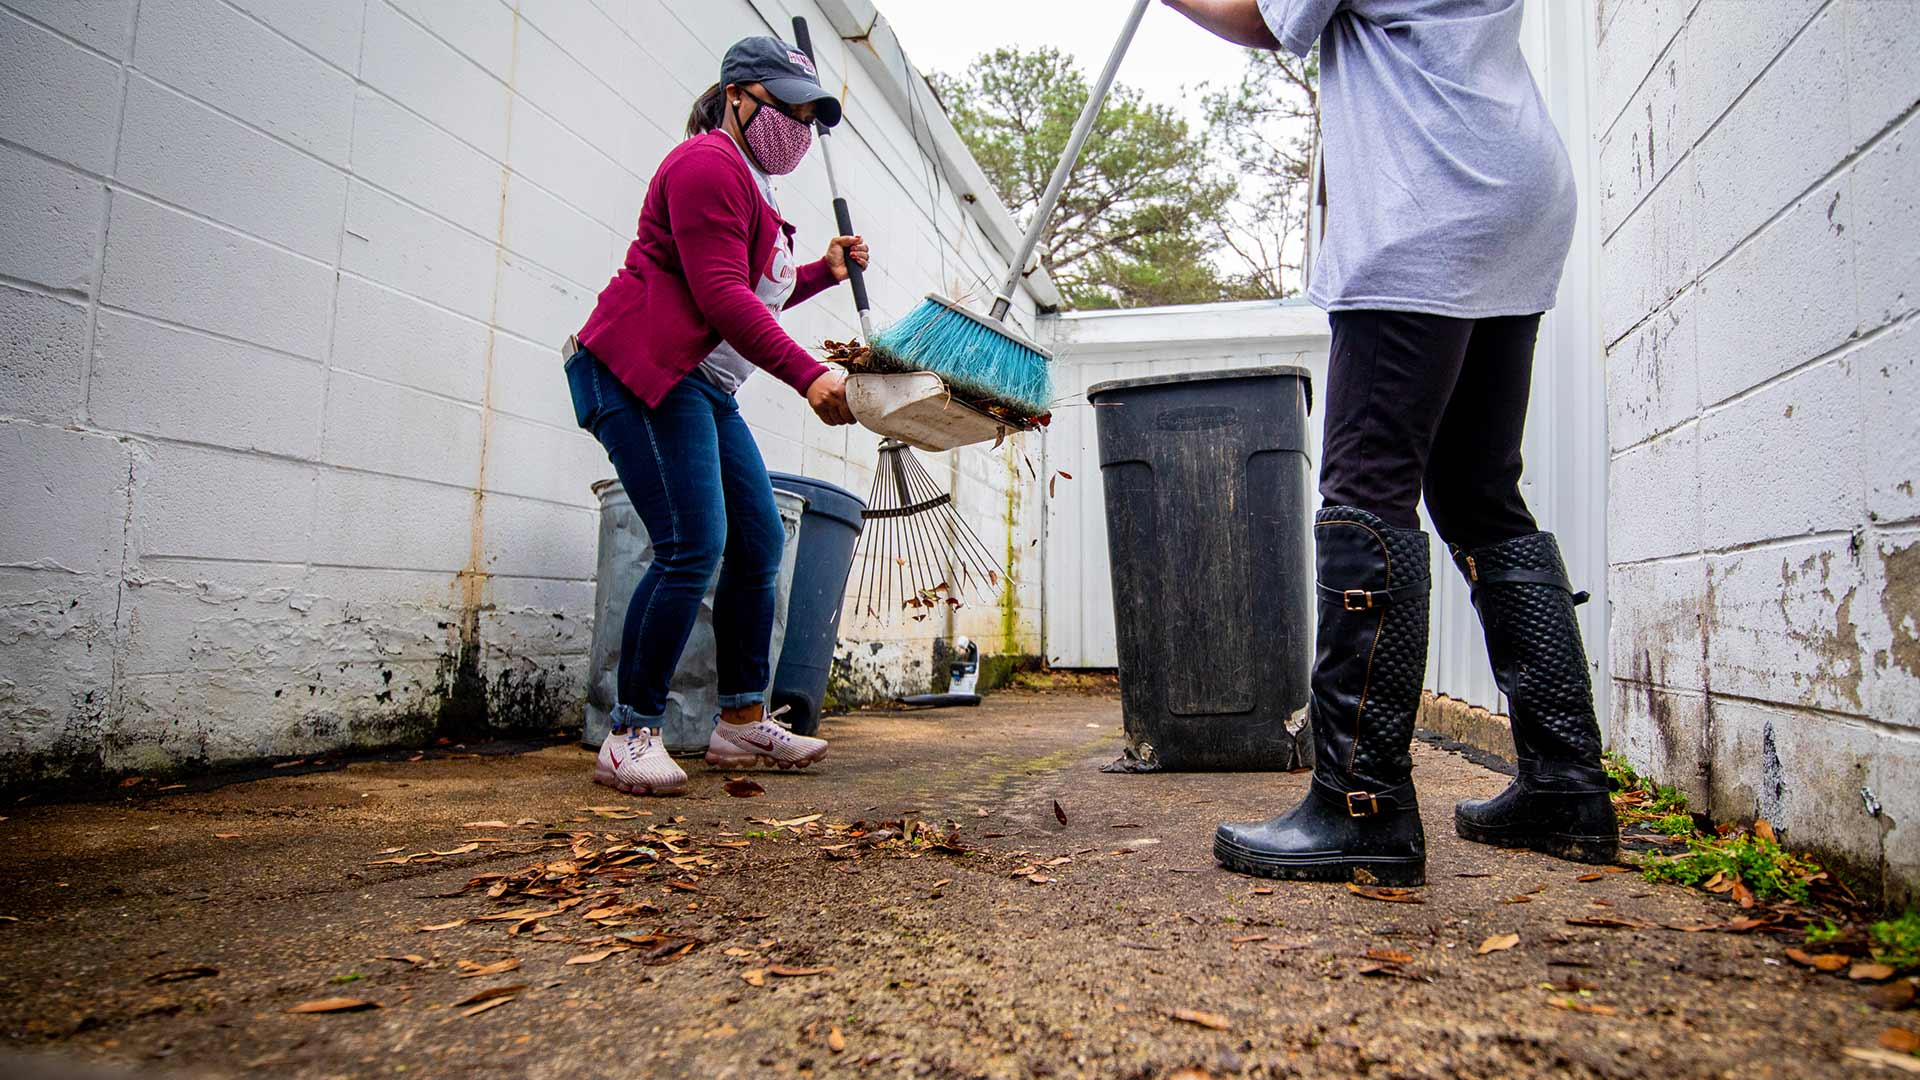 Christy Laster, left, and Cassandra Ellis work together to clear an area of leaves and pine needles.